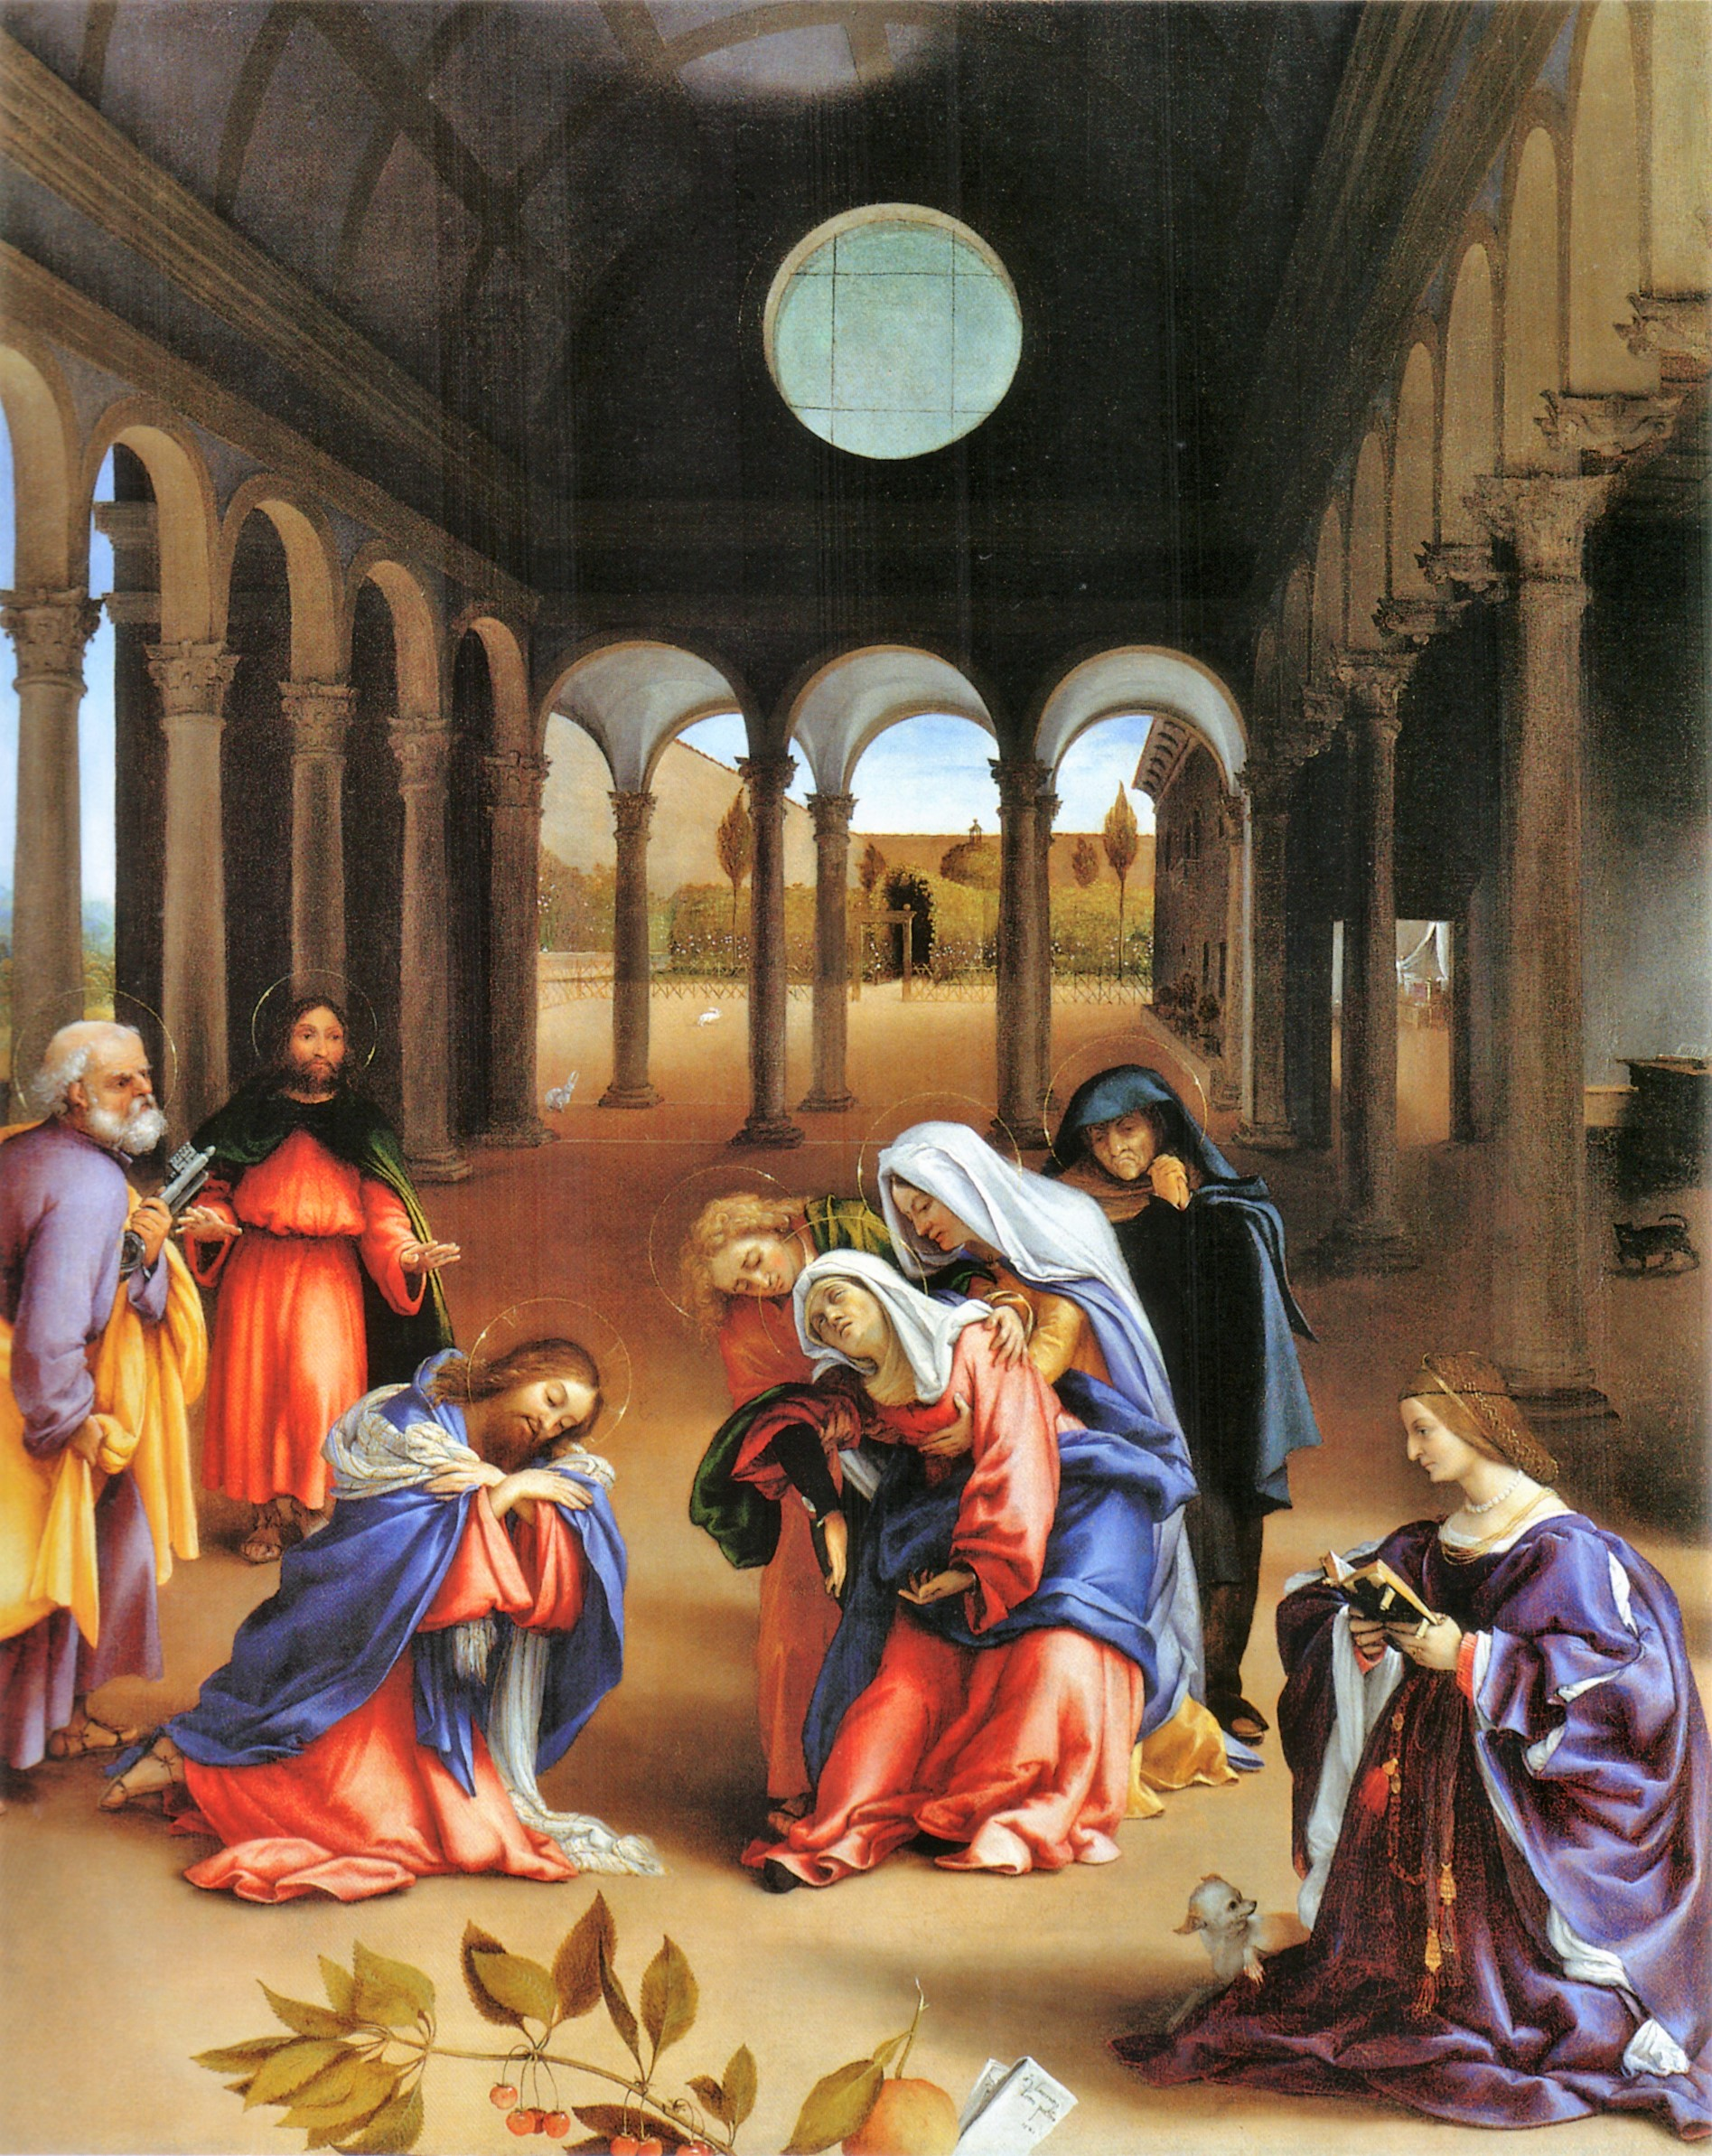 Lotto 1521 Christ taking leave o fhis mother avec Elisabetta Rota Gemaldegalerie, Berlin